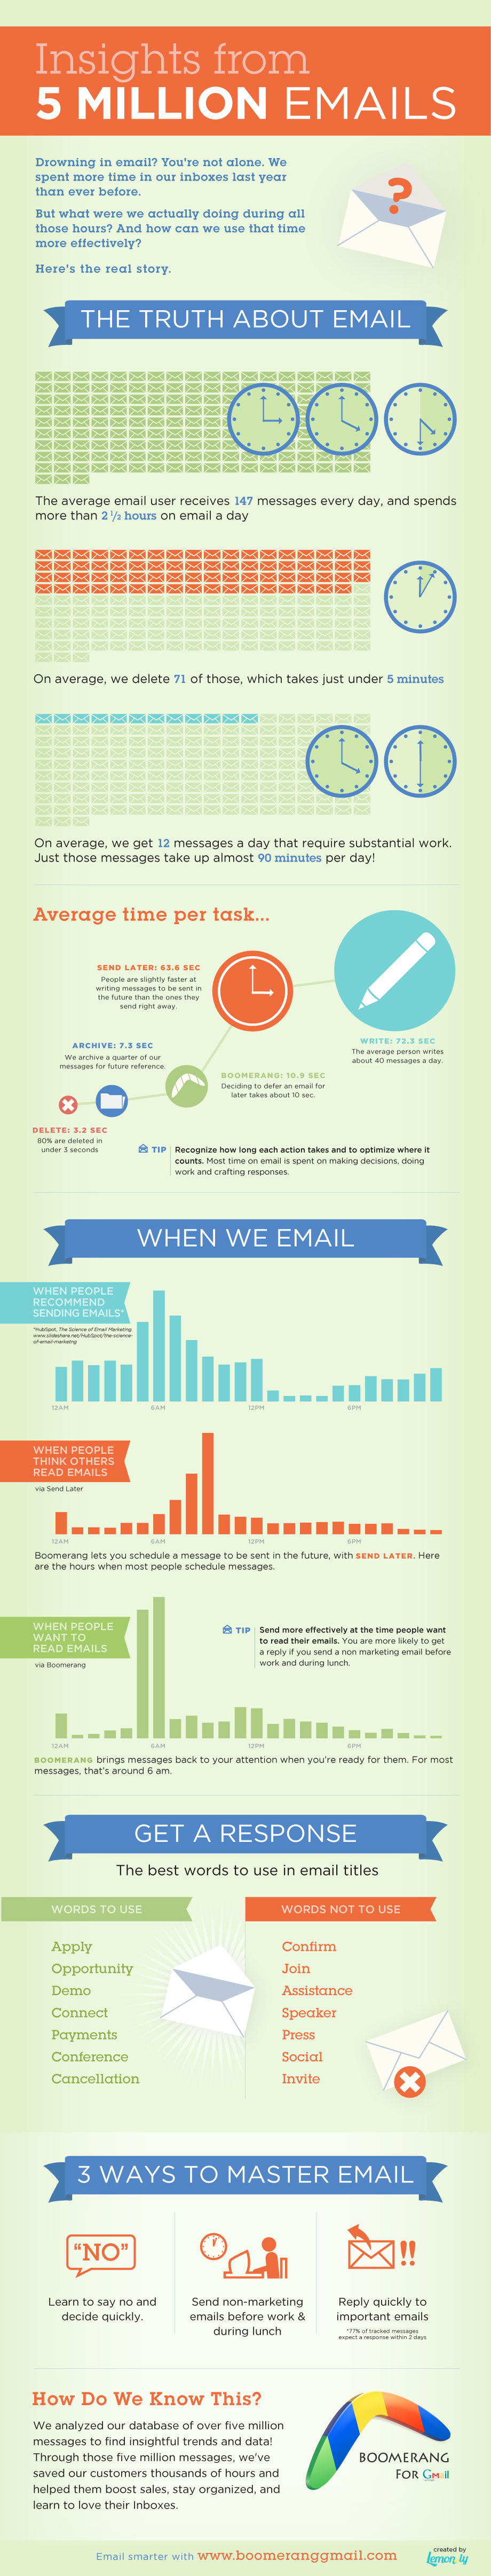 http://9.mshcdn.com/wp-content/uploads/2012/02/boomerang_email_infographic1.jpg